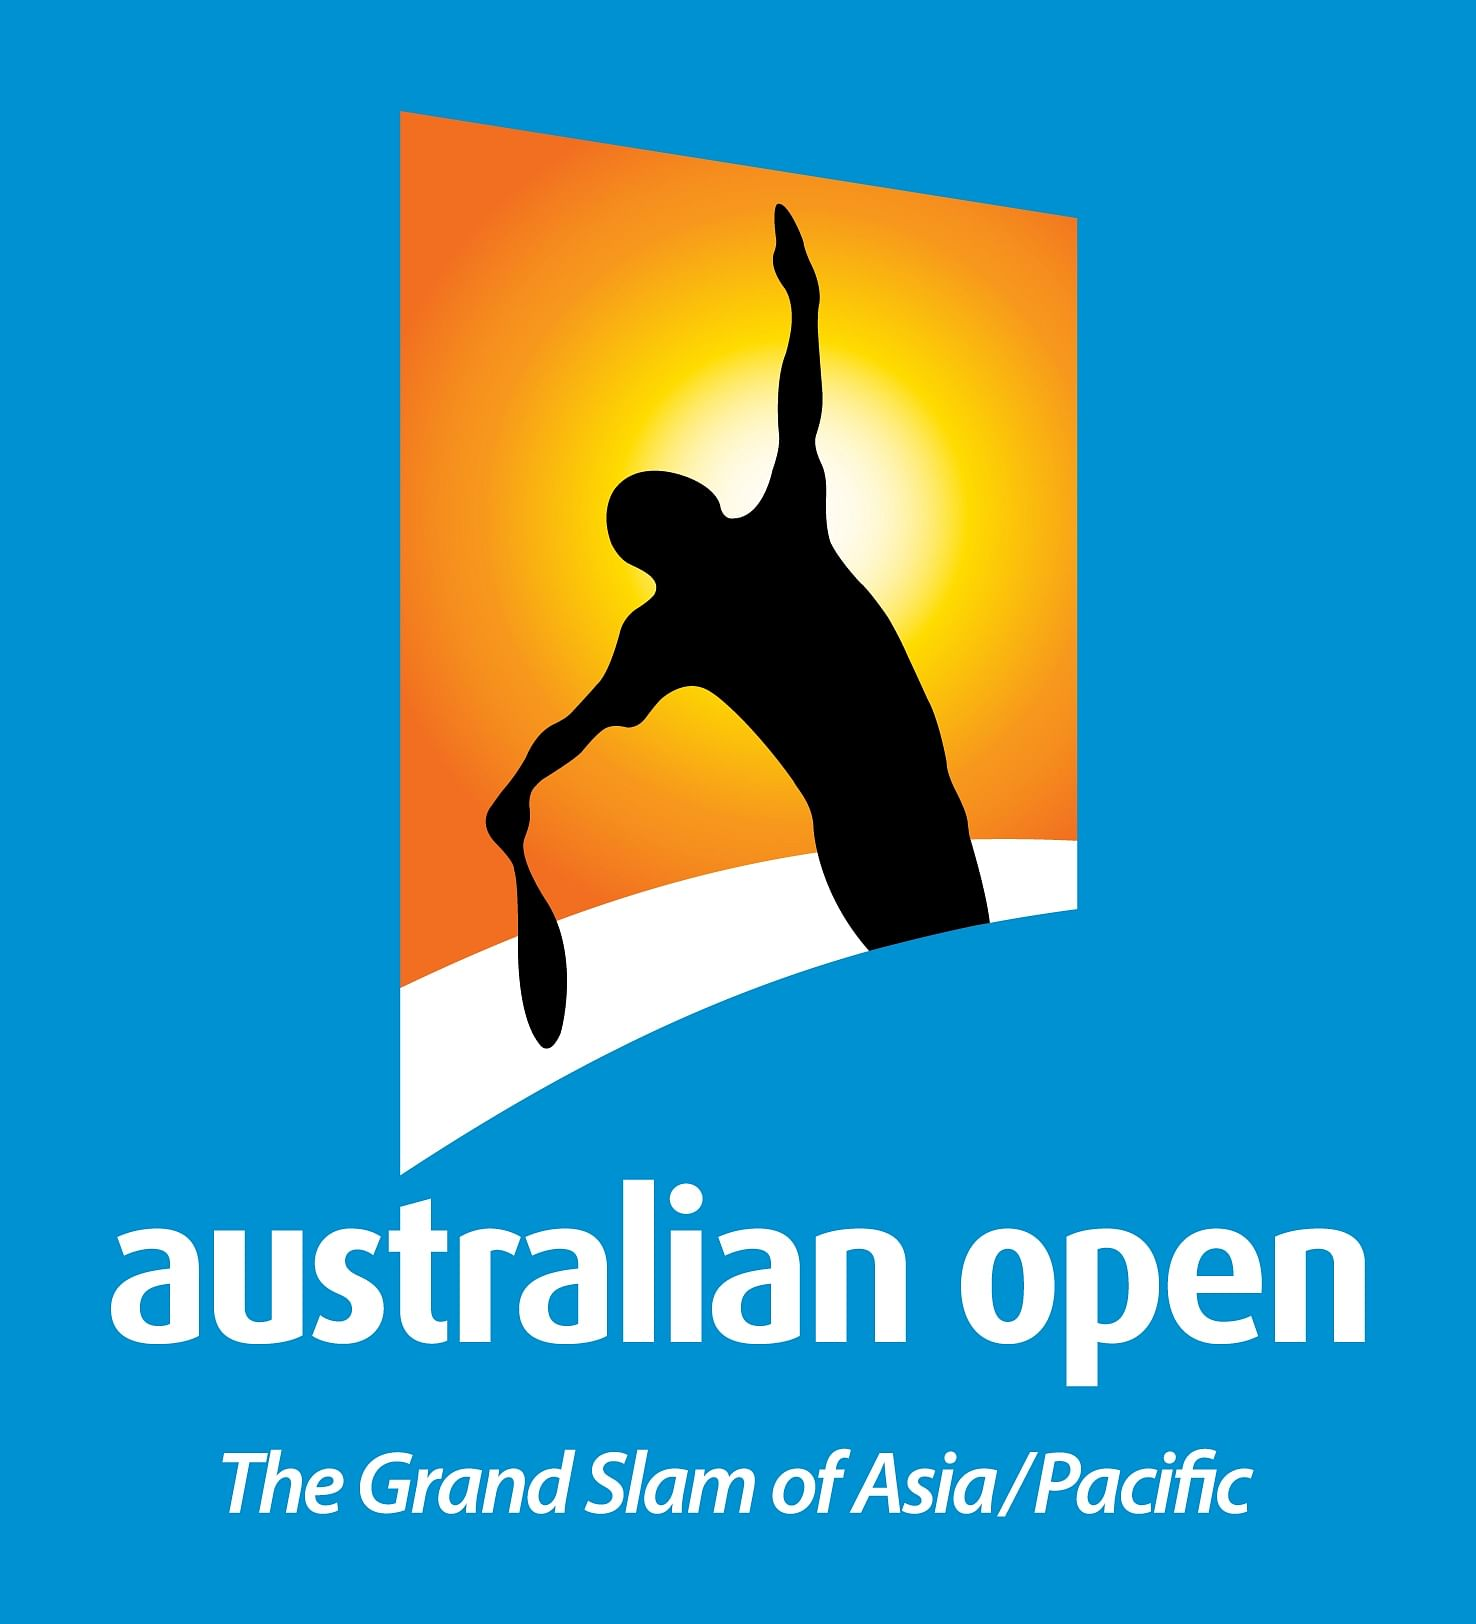 The Australian Open tennis players are experiencing foot injuries